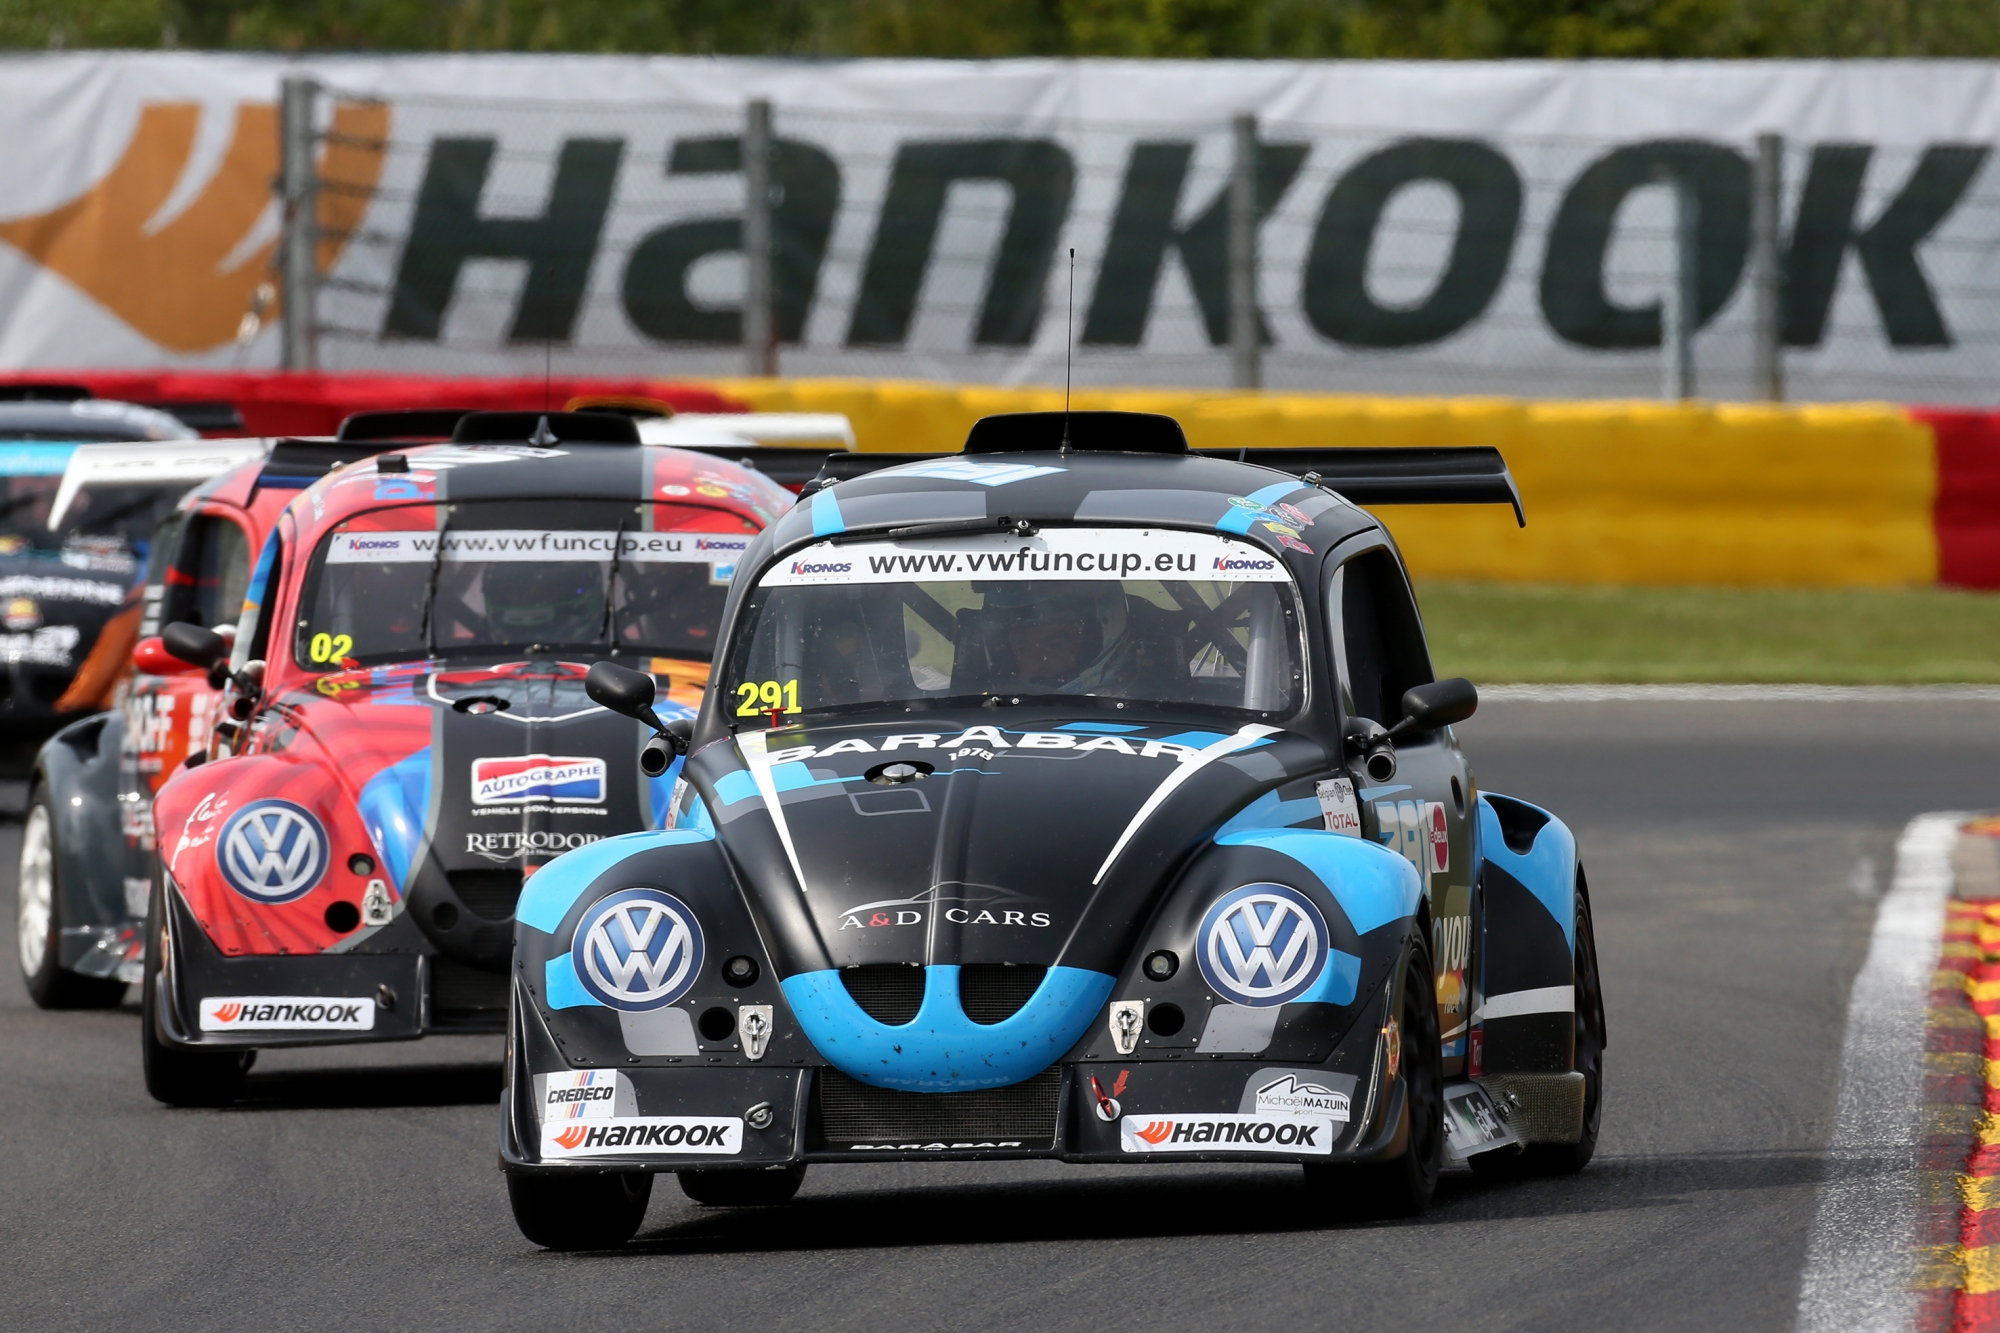 image 2 - Marino Franchitti aan de start van de Hankook 25 Hours VW Fun Cup!